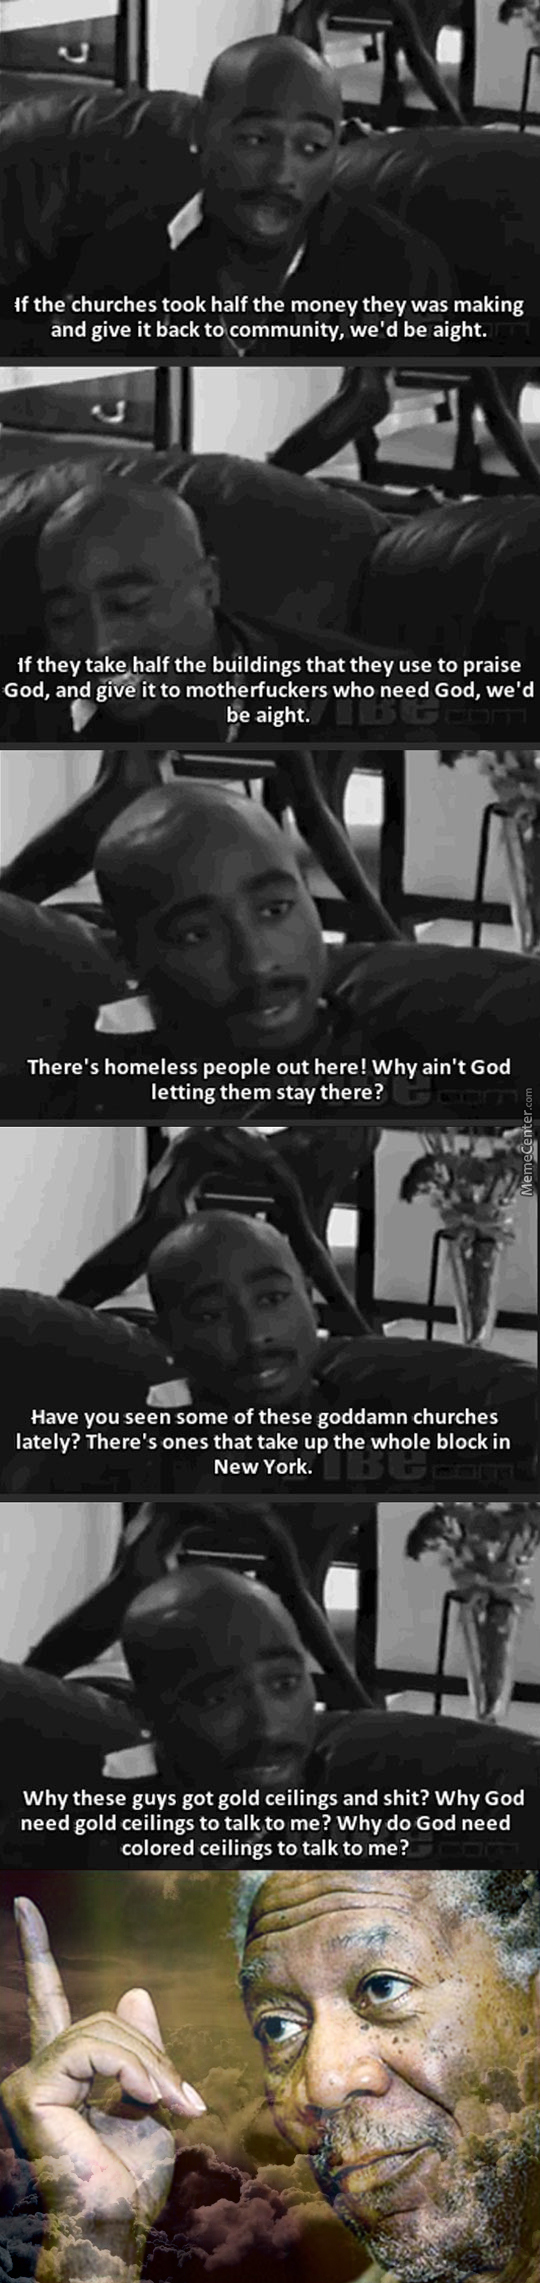 Tupac's View On Religion And Churches